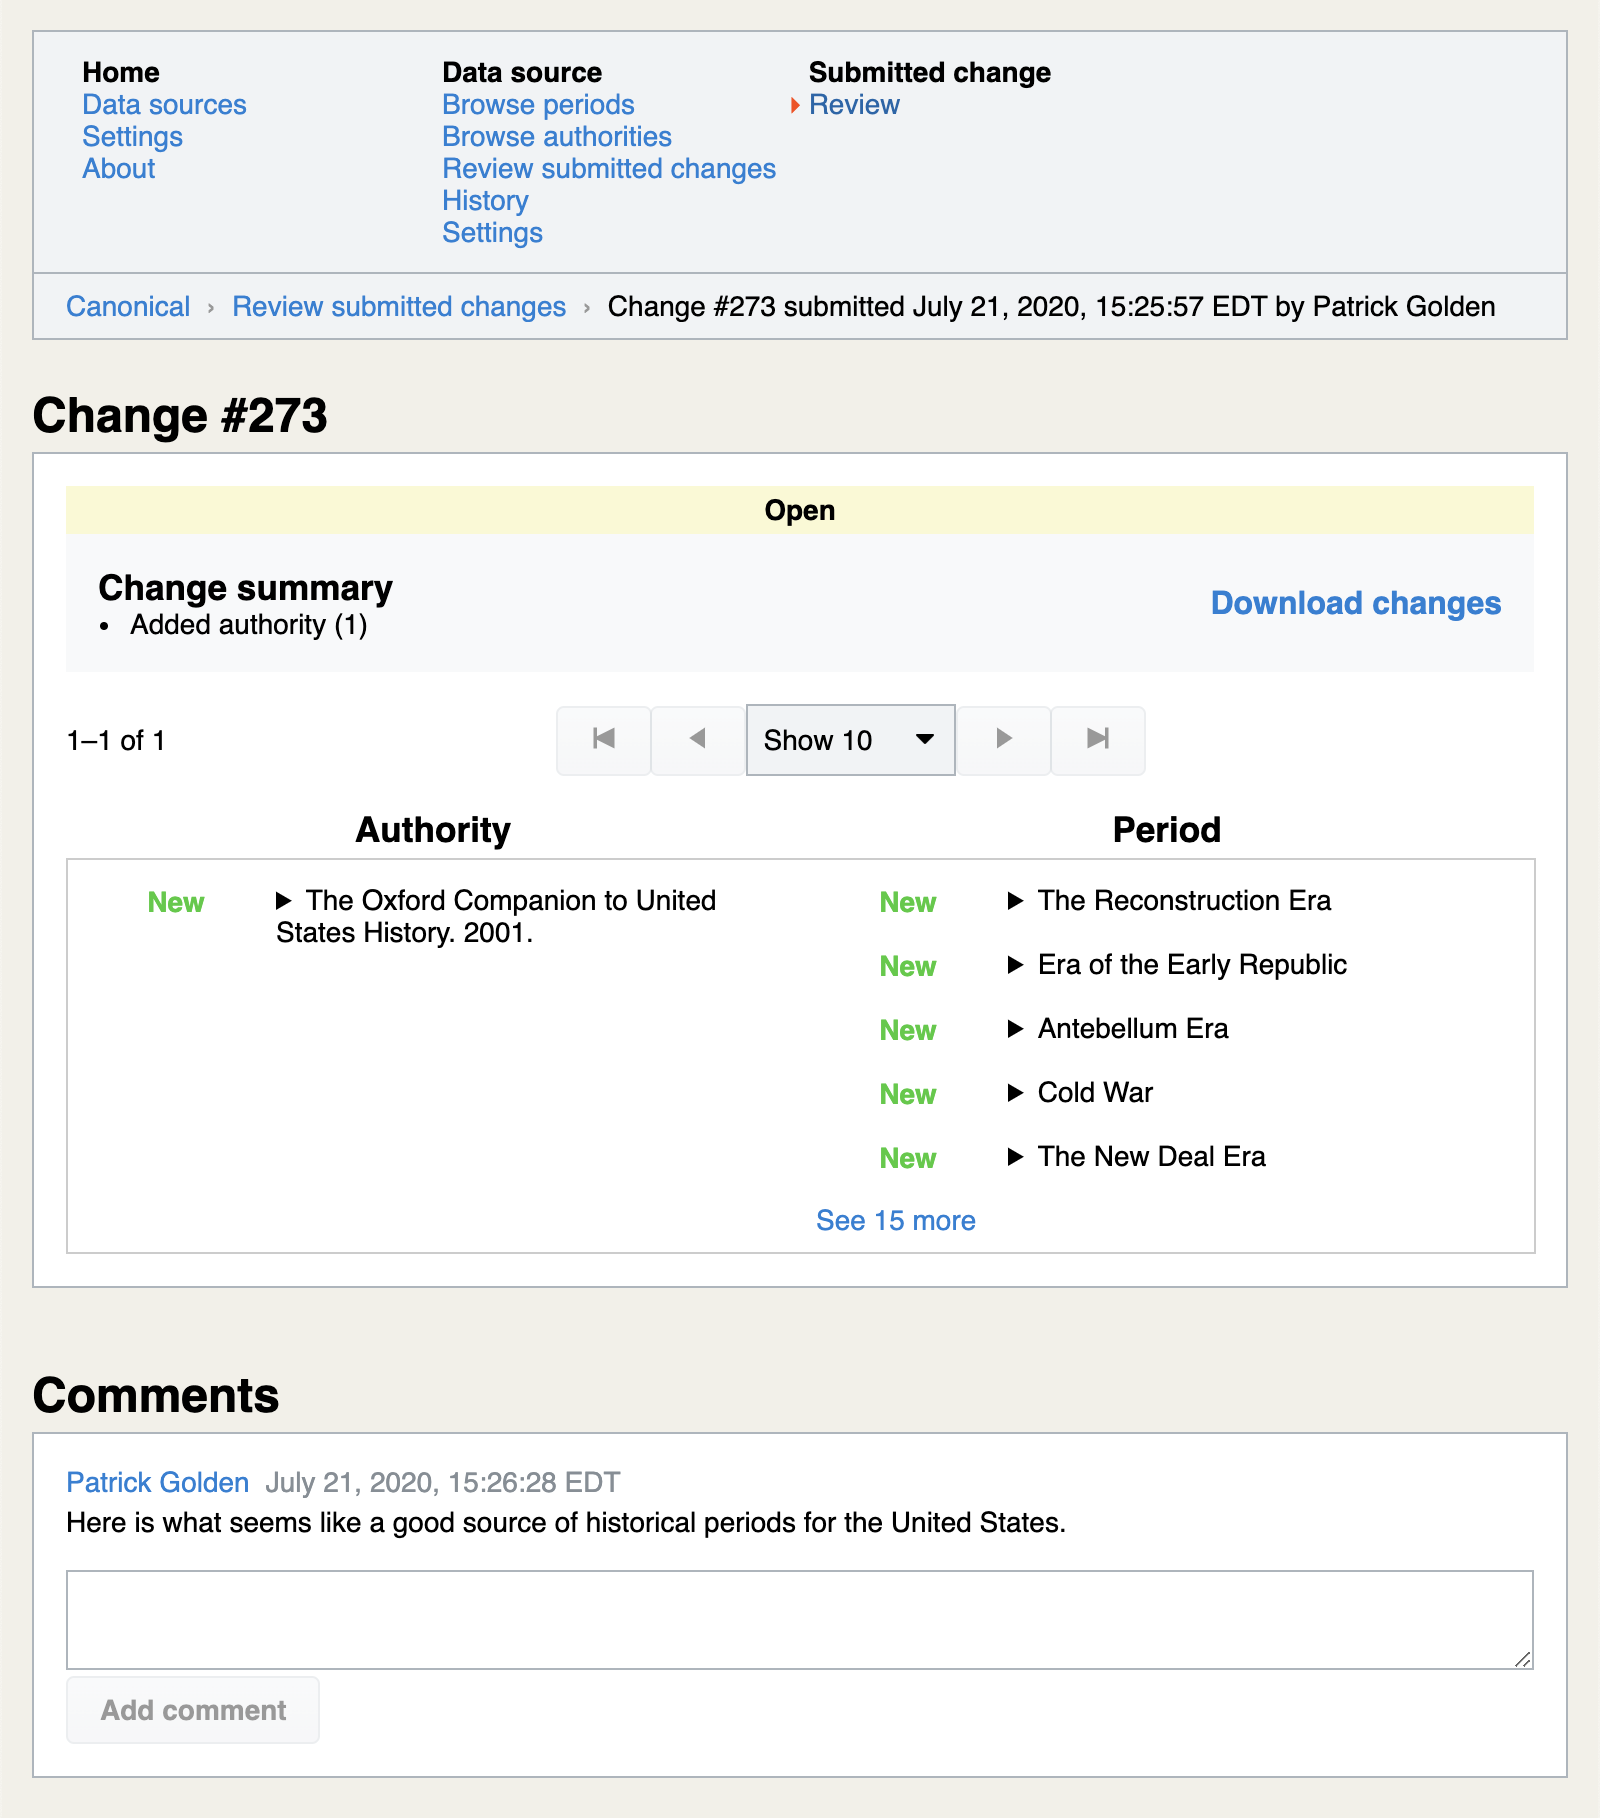 Viewing comments on submitted changes to the canonical periods